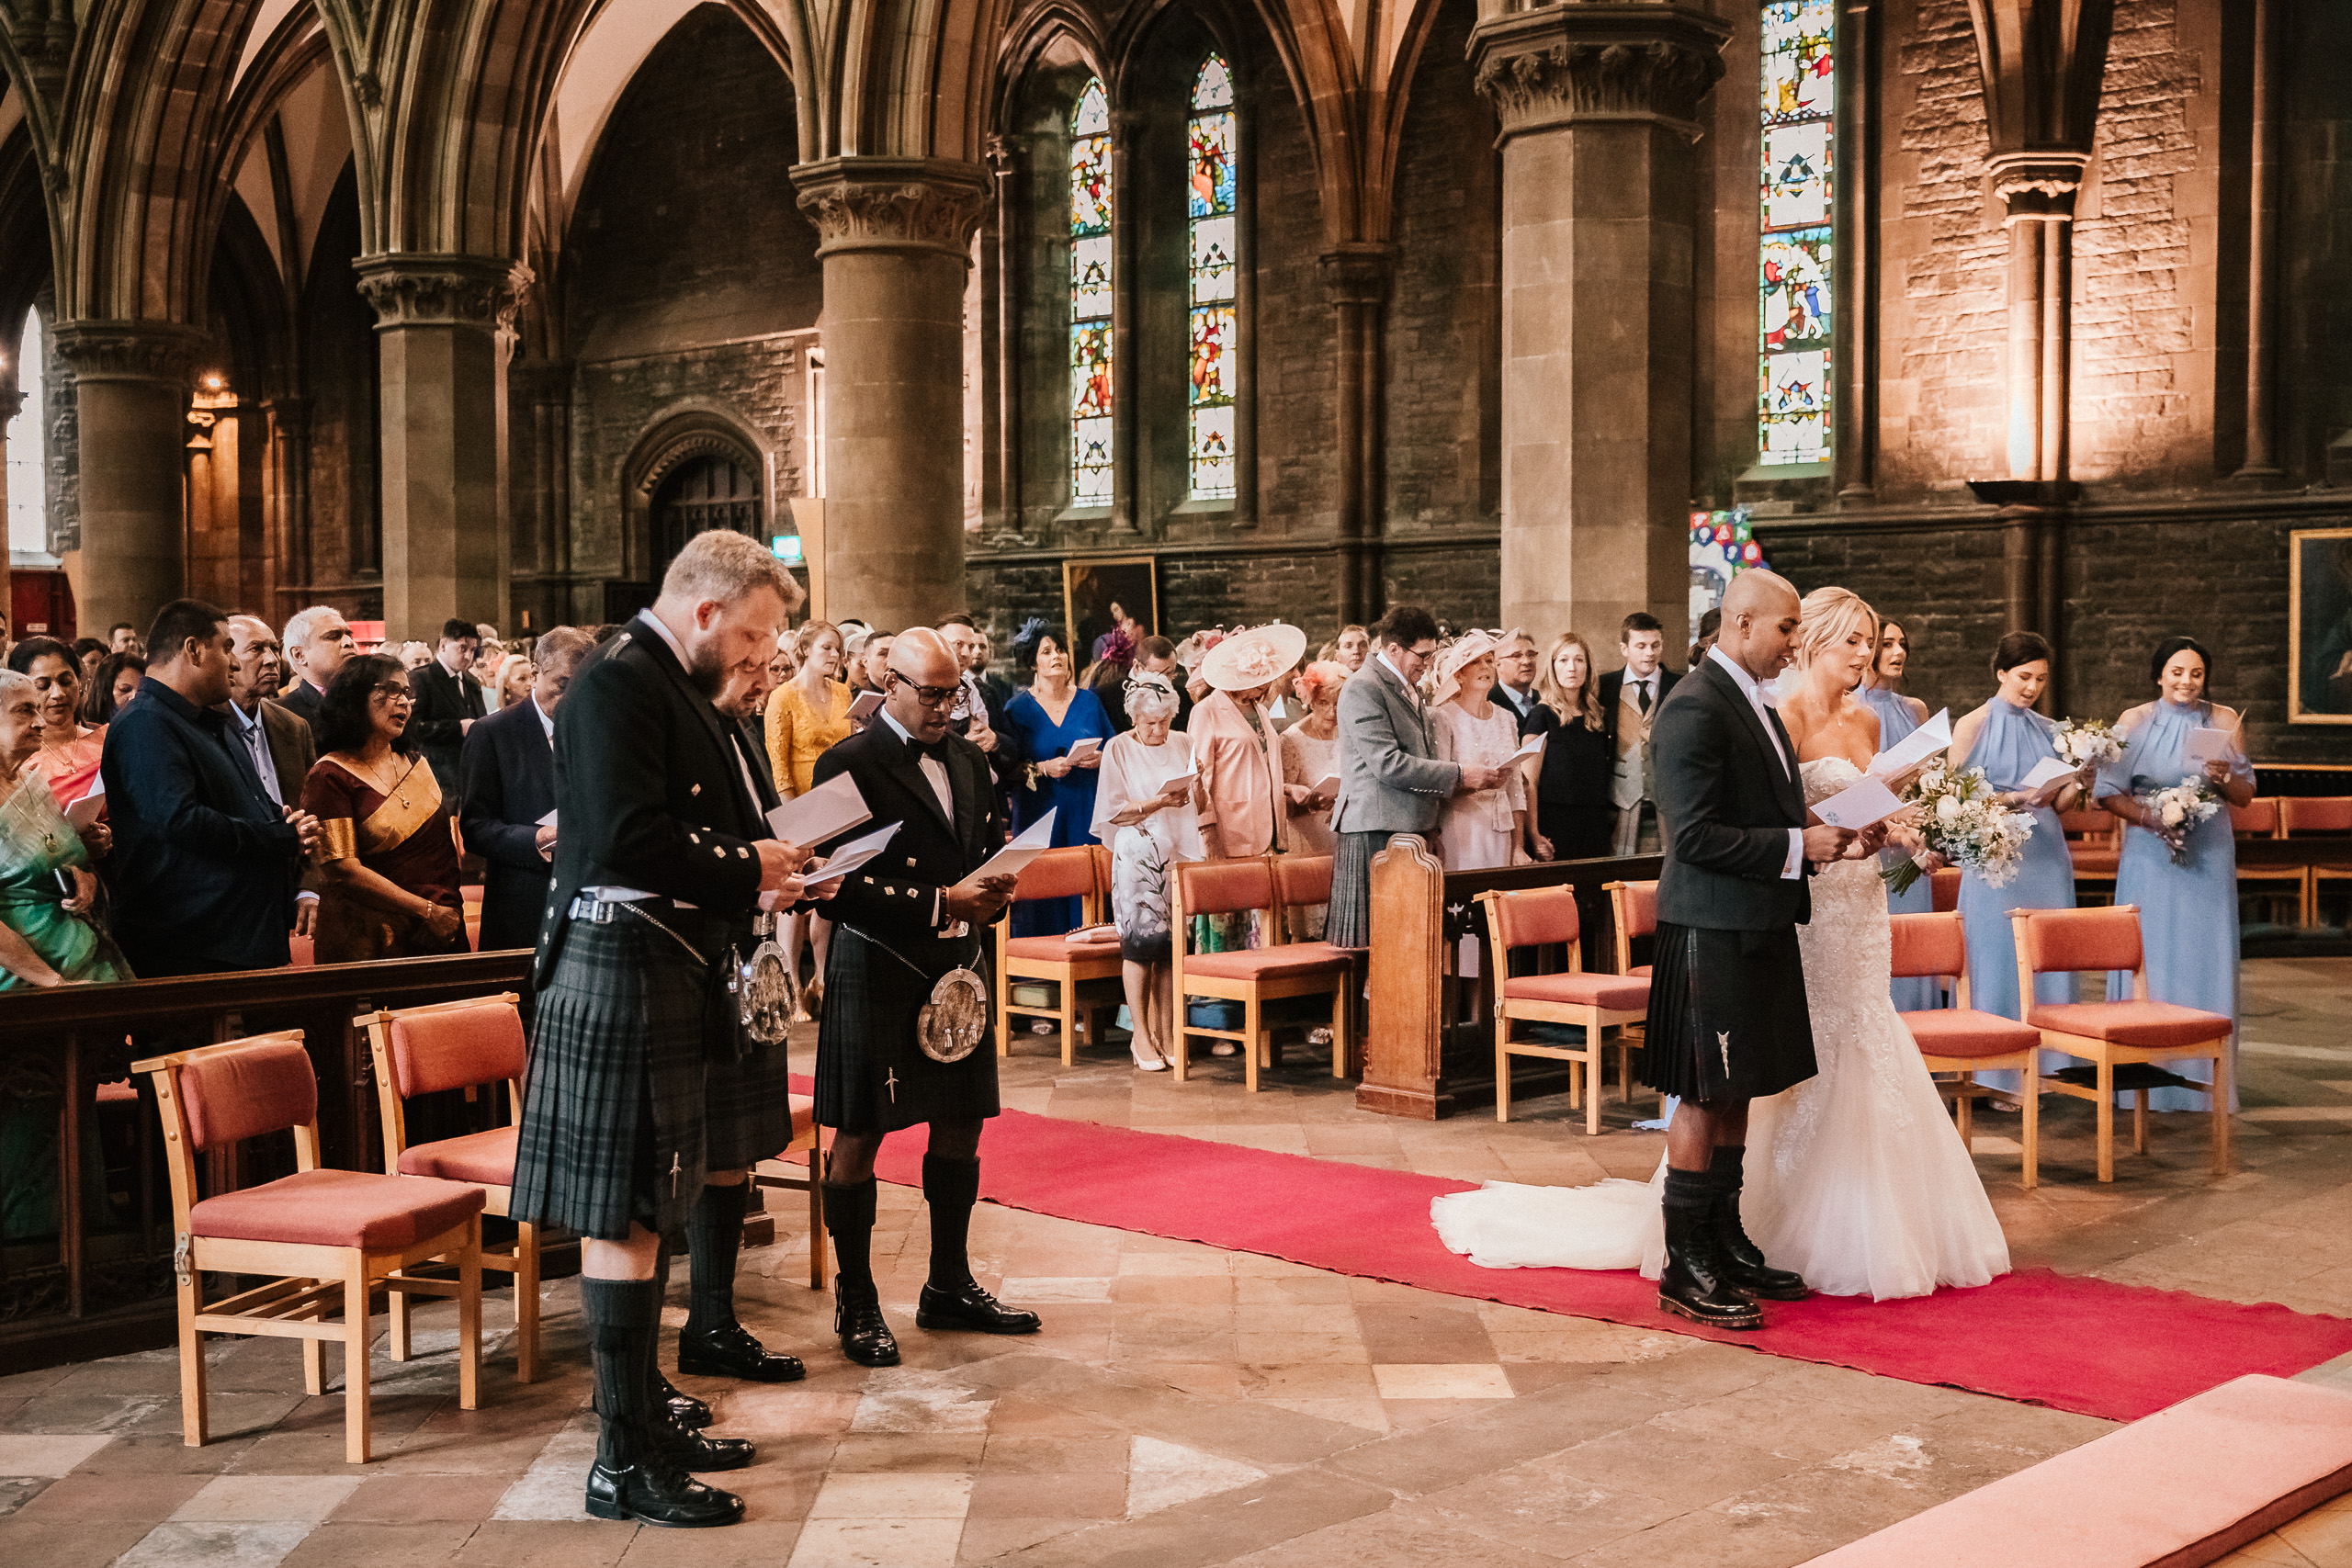 PapaKåta couple April & Martin's Sperry wedding at Arniston House, Scotland captured by Laurence Howe Photography- Ceremony at St Mary's Cathedral Edinburgh